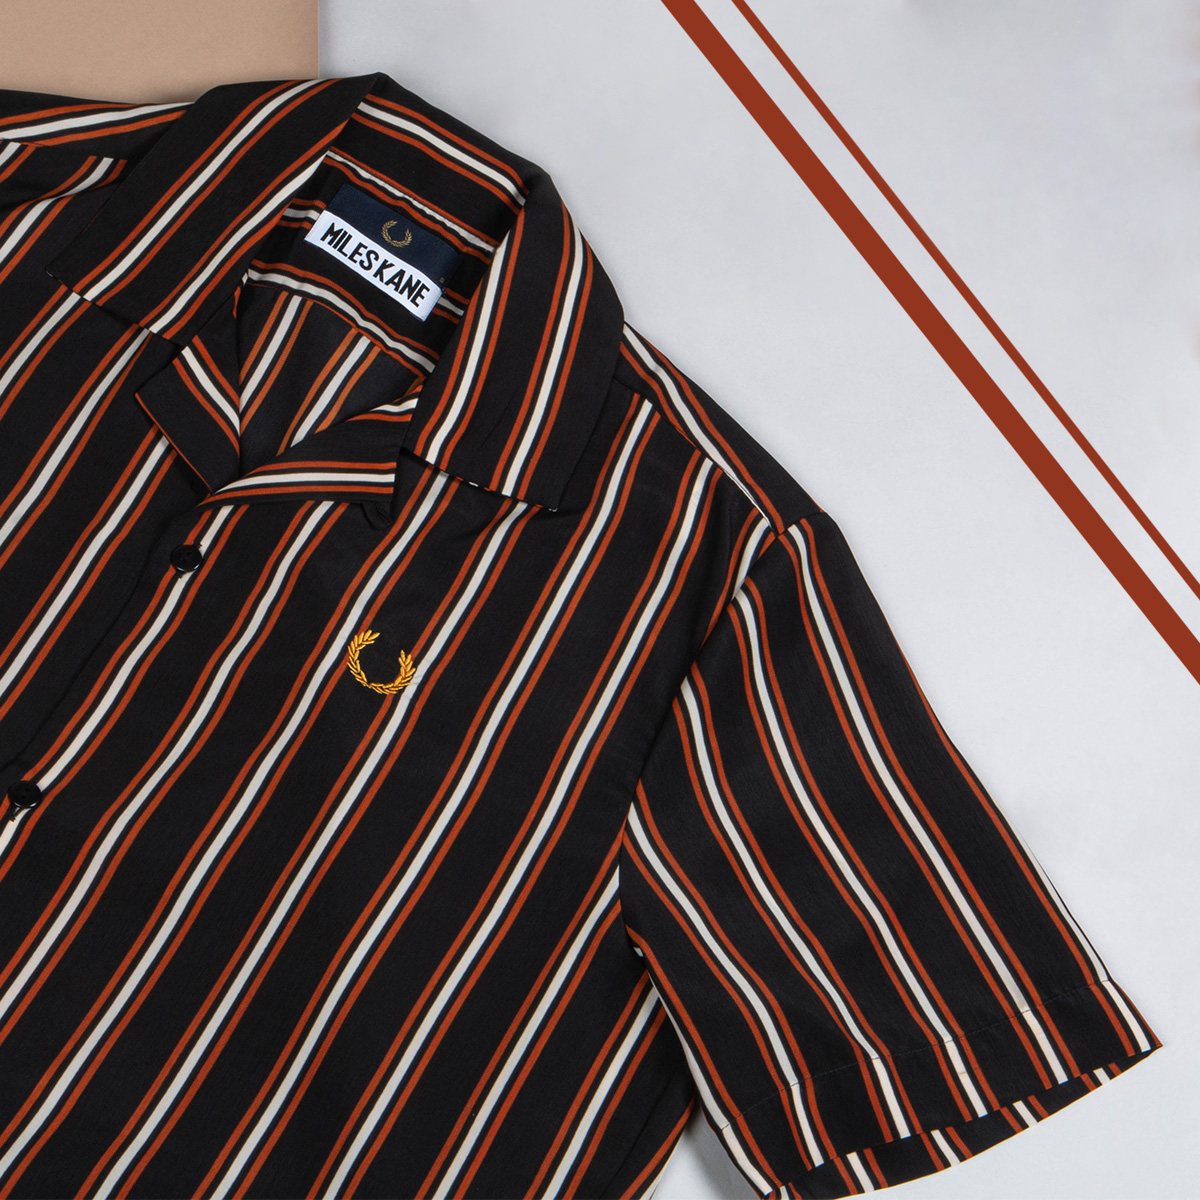 A red and white striped Fred Perry x Miles Kane shirt